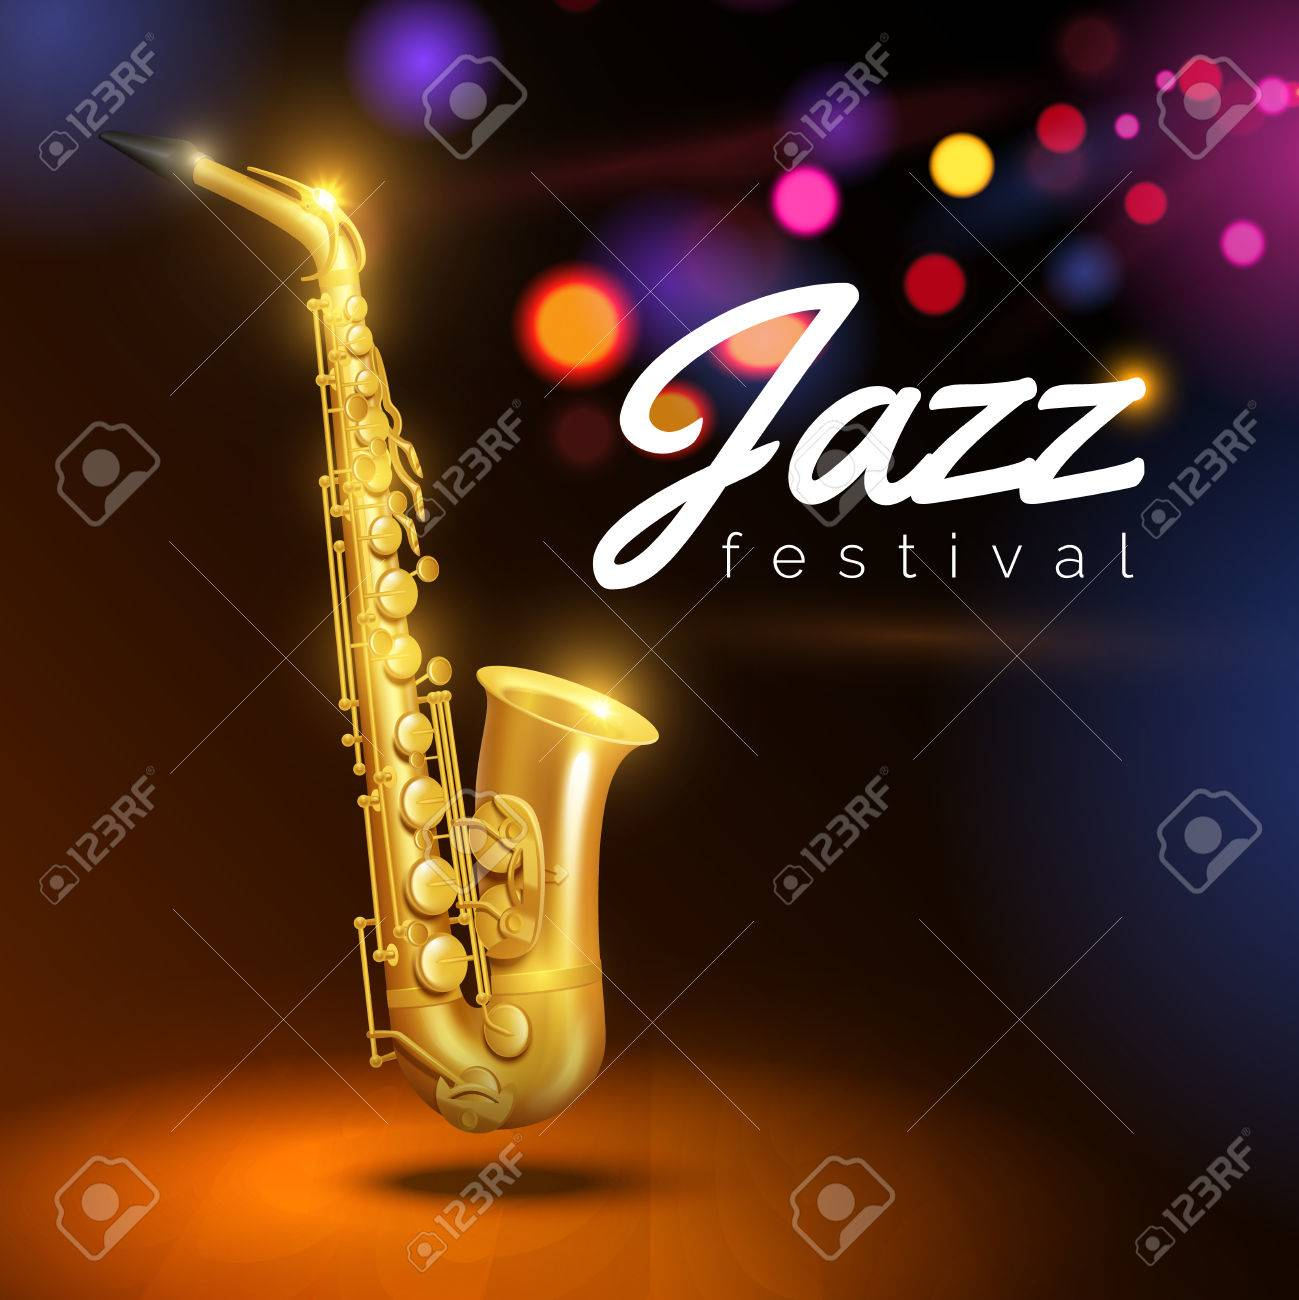 Golden saxophone on black background with colored lights and caption jazz festival vector Illustration - 49547073